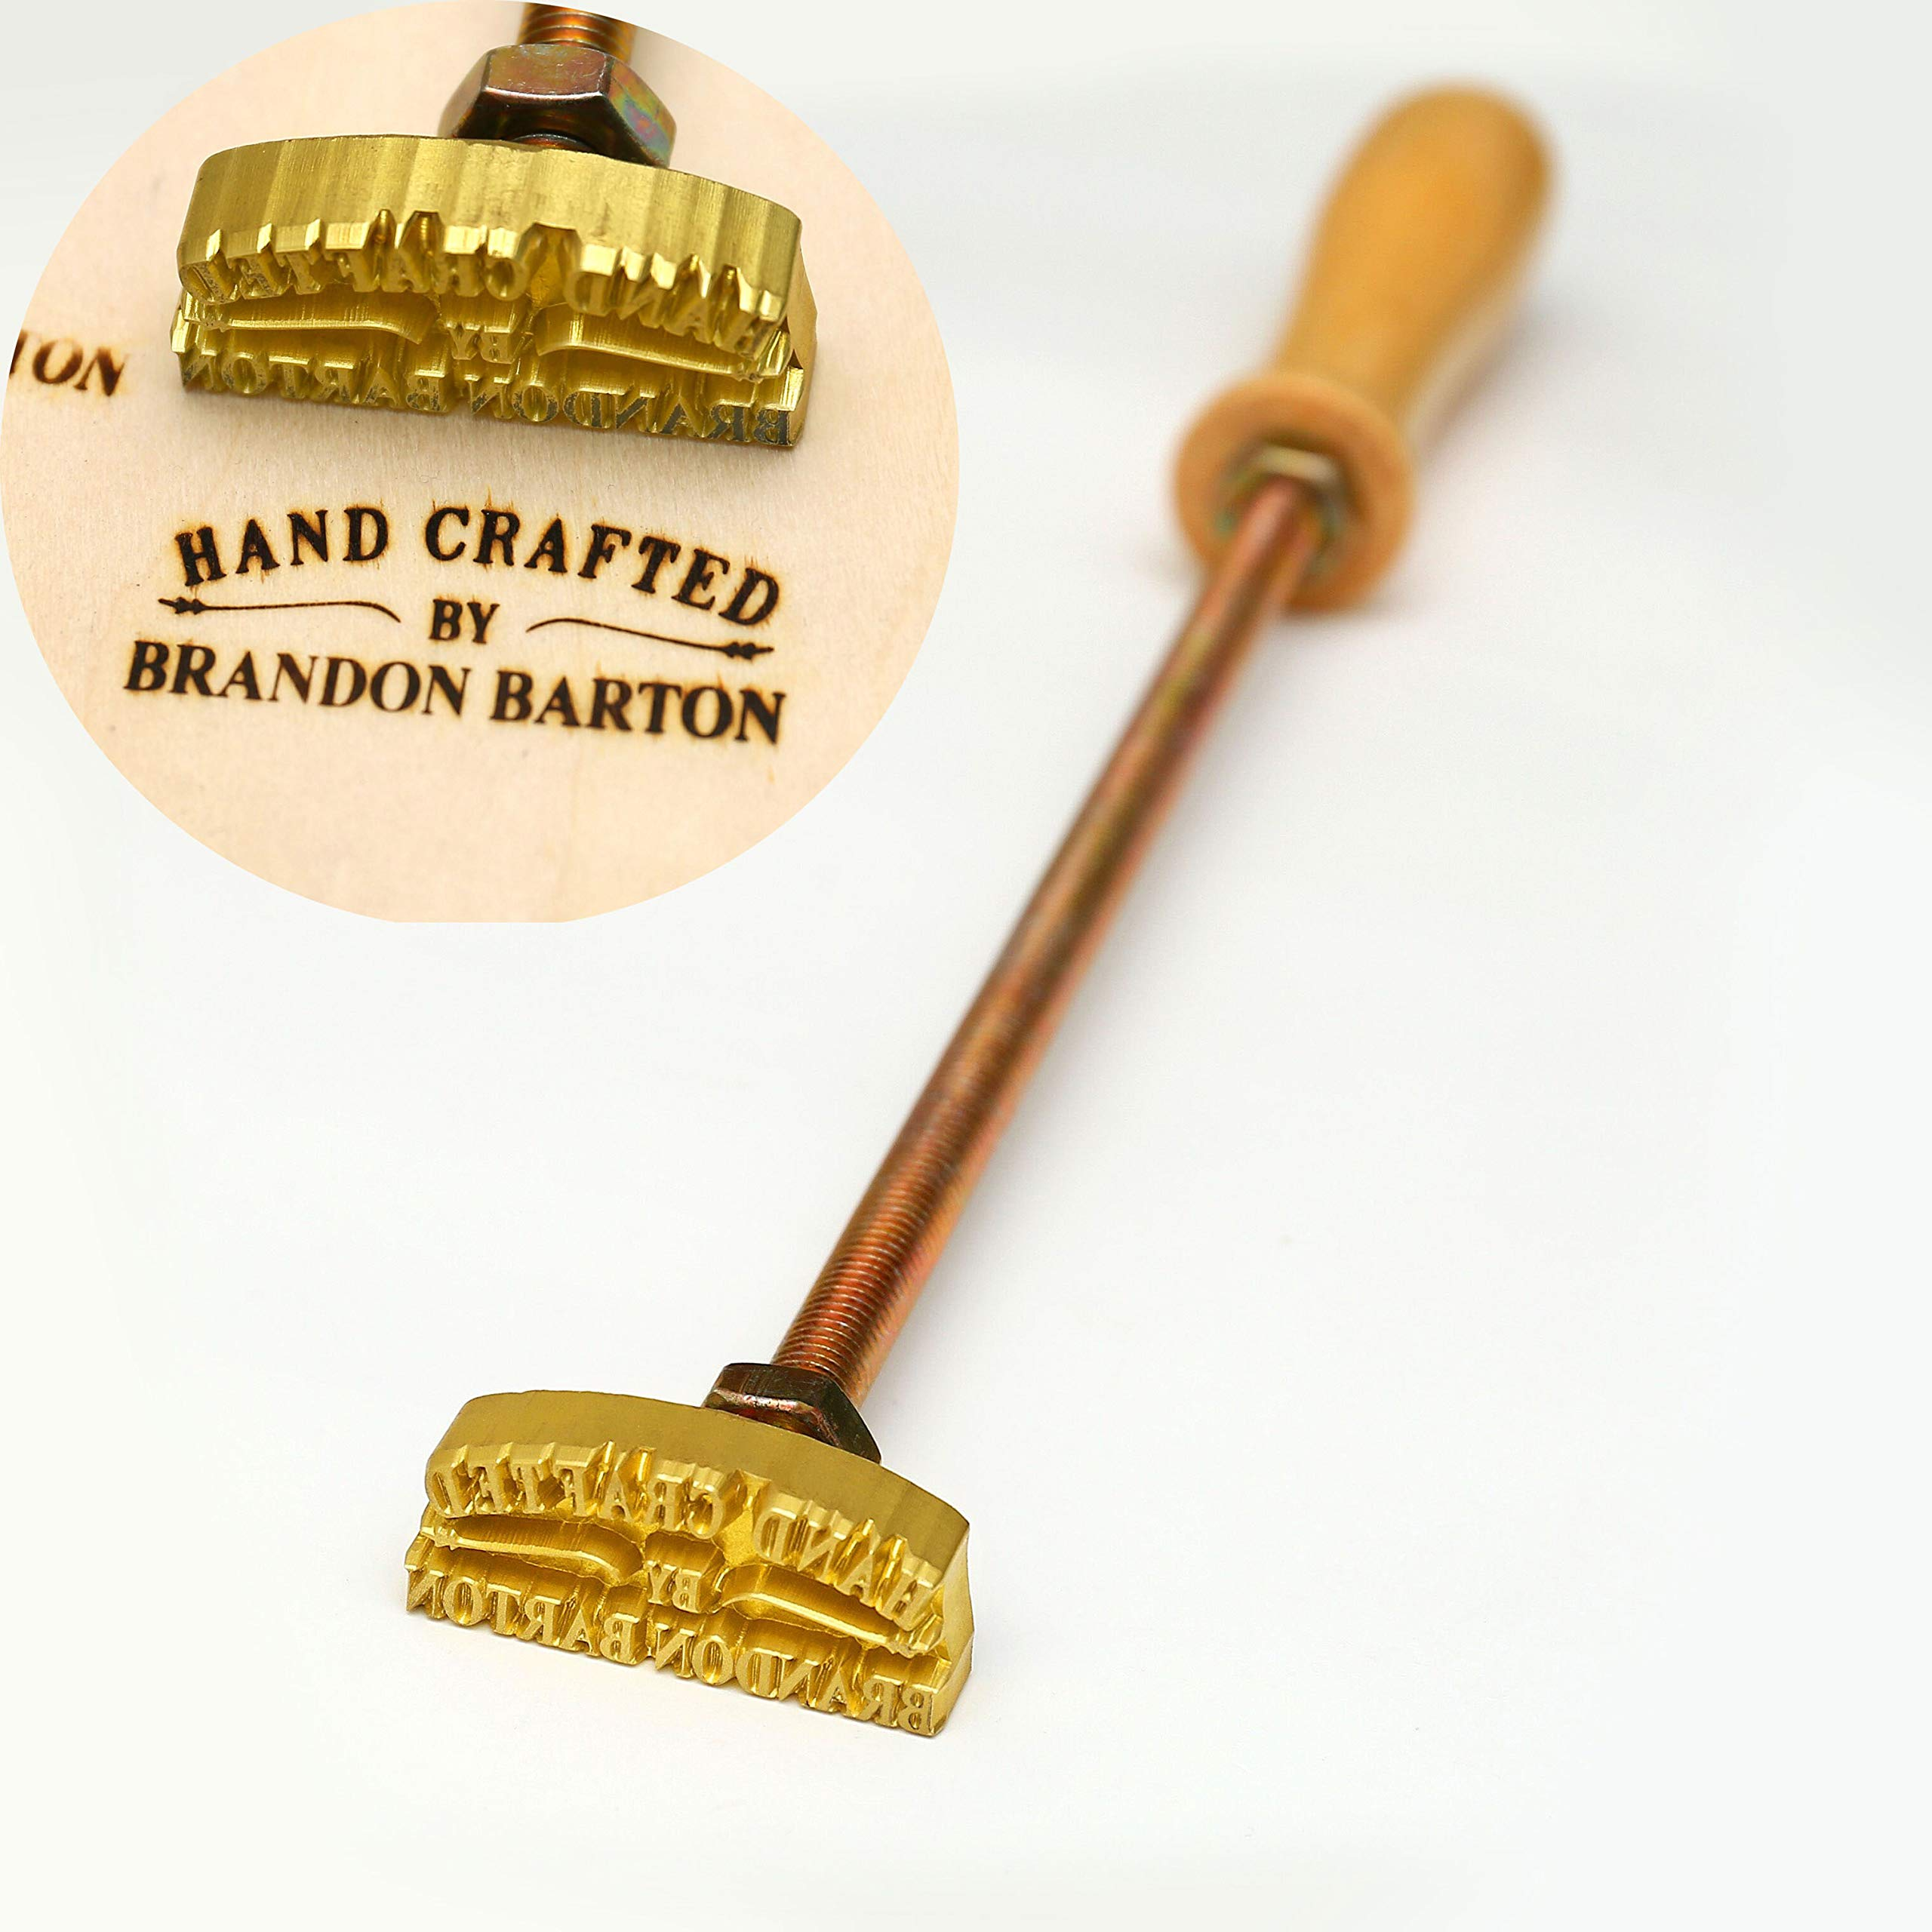 Custom Logo Wood Branding Iron,Durable Leather Branding Iron Stamp,Wood Branding Iron/Wedding Gift,Handcrafted by Design (2''x2'') by Generic